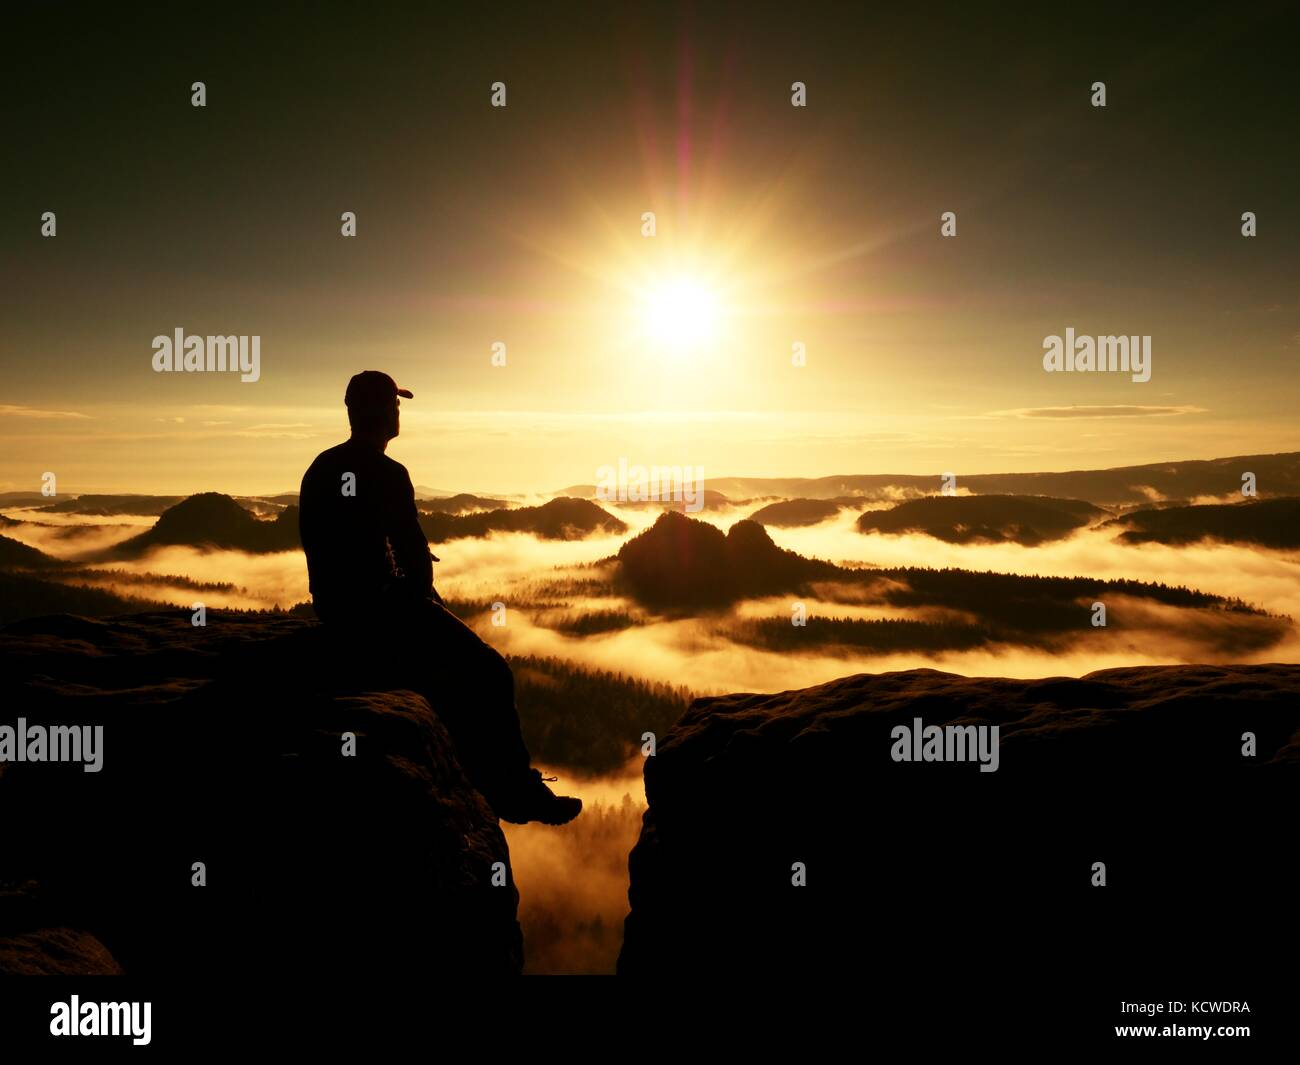 Moment of loneliness. Man with cap sit on the peak of rock and watching into colorful mist and fog in forest valley. - Stock Image